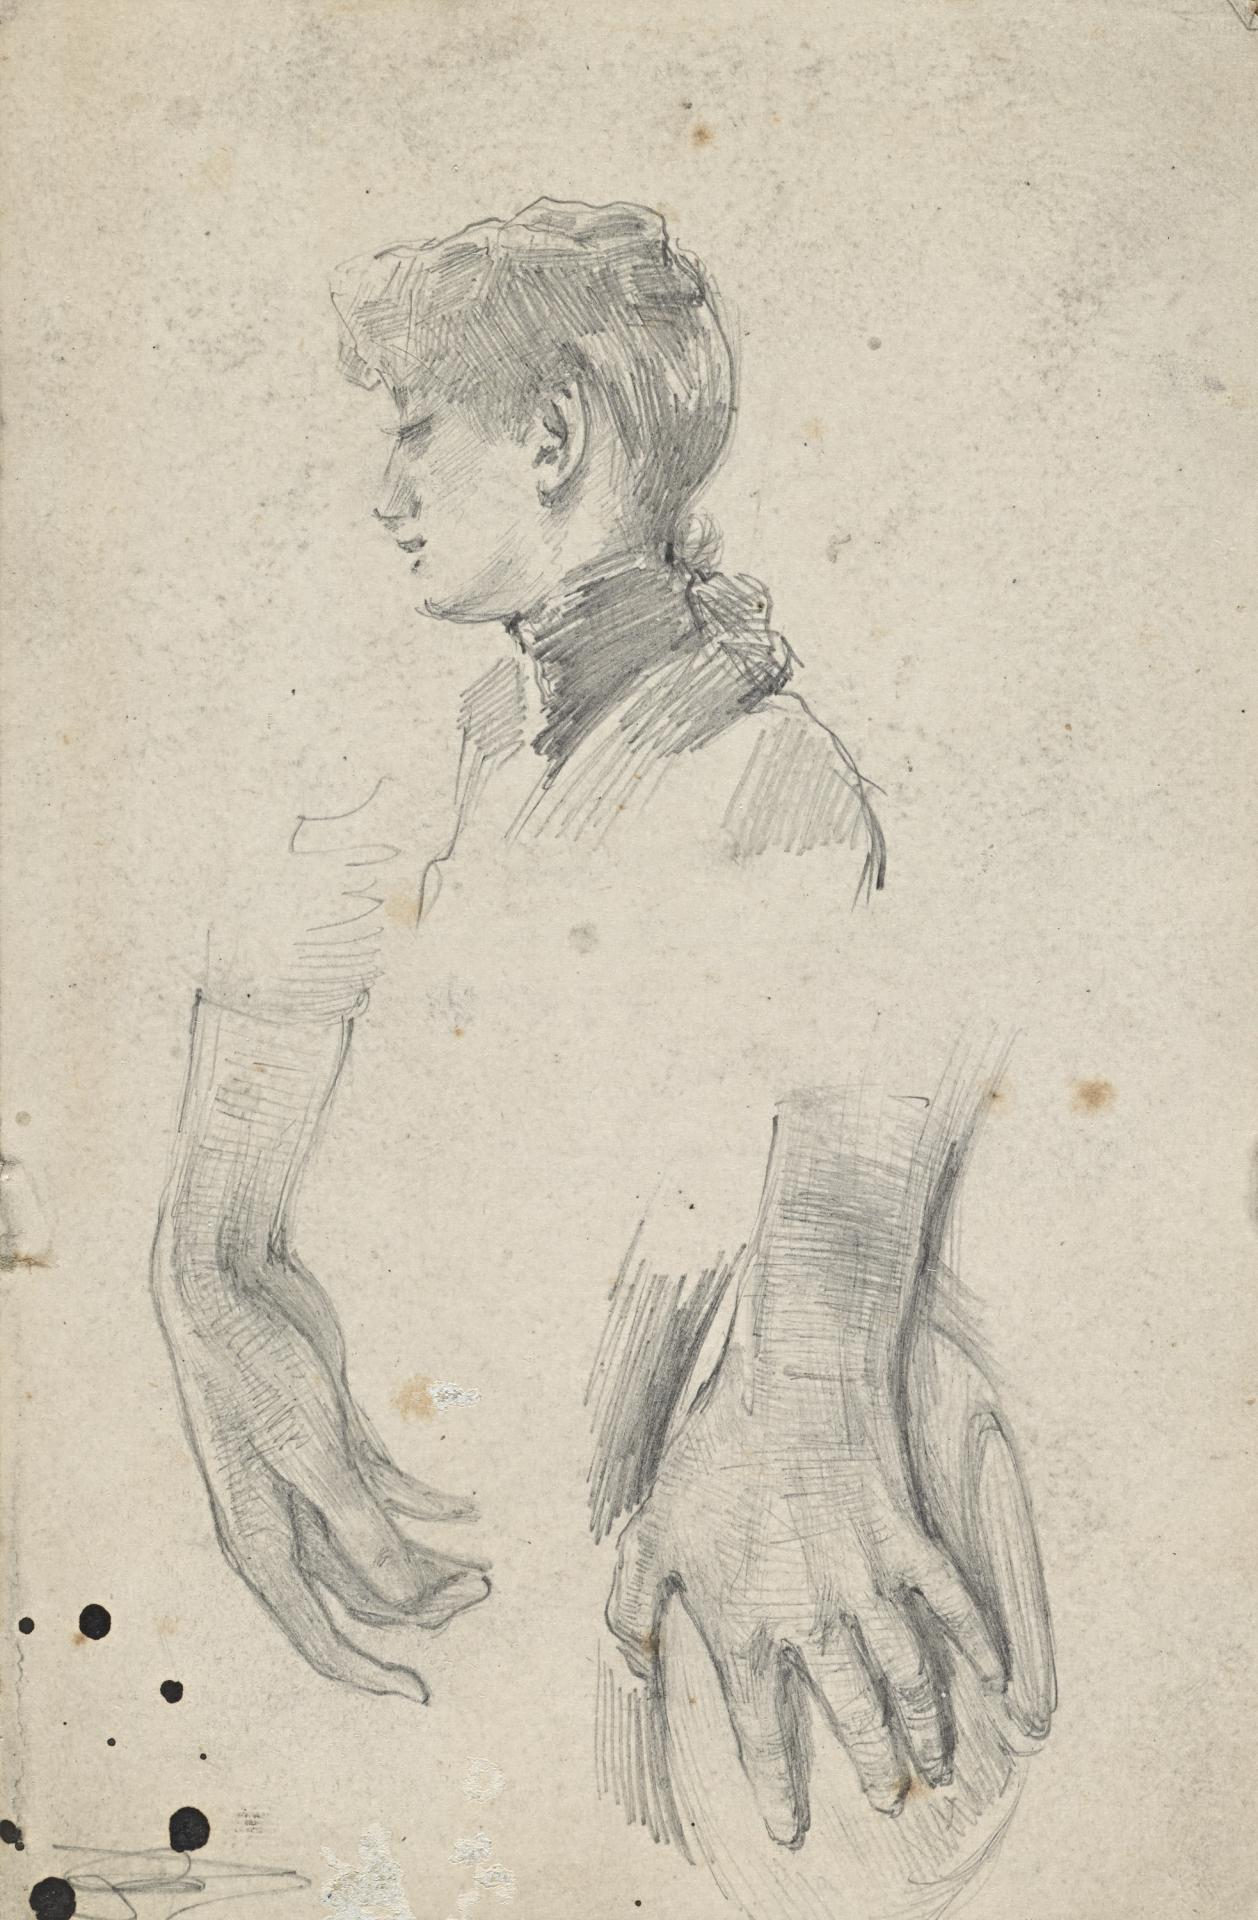 Study of woman's head, hands